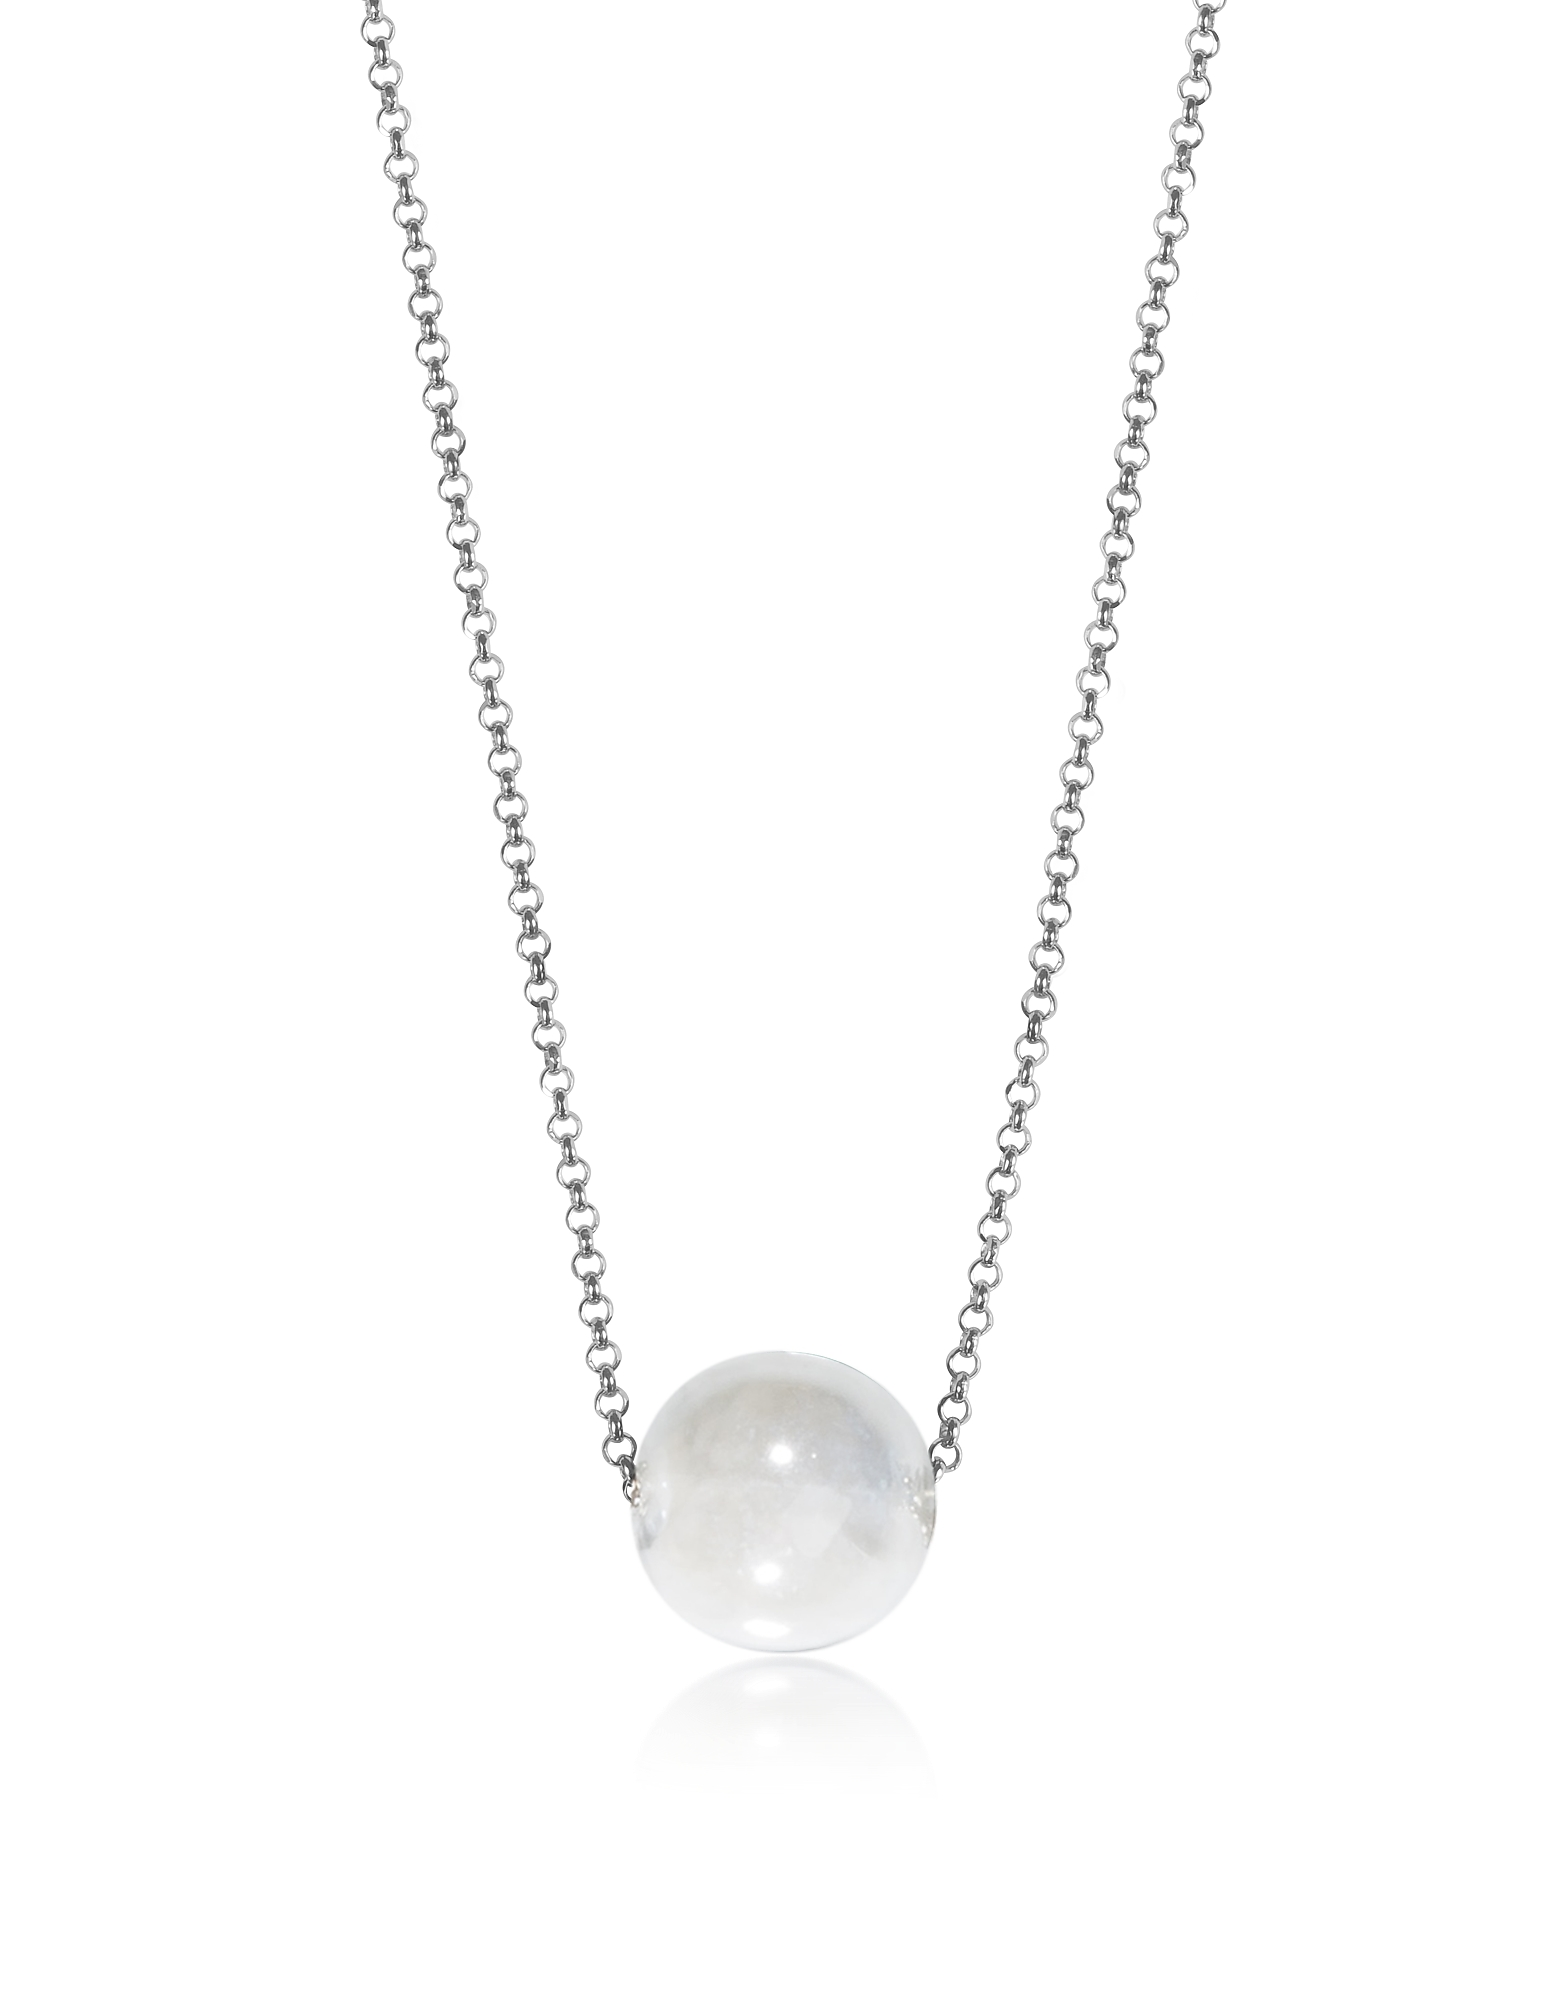 Antica Murrina Necklaces, Perleadi White Murano Glass Bead Chain Necklace